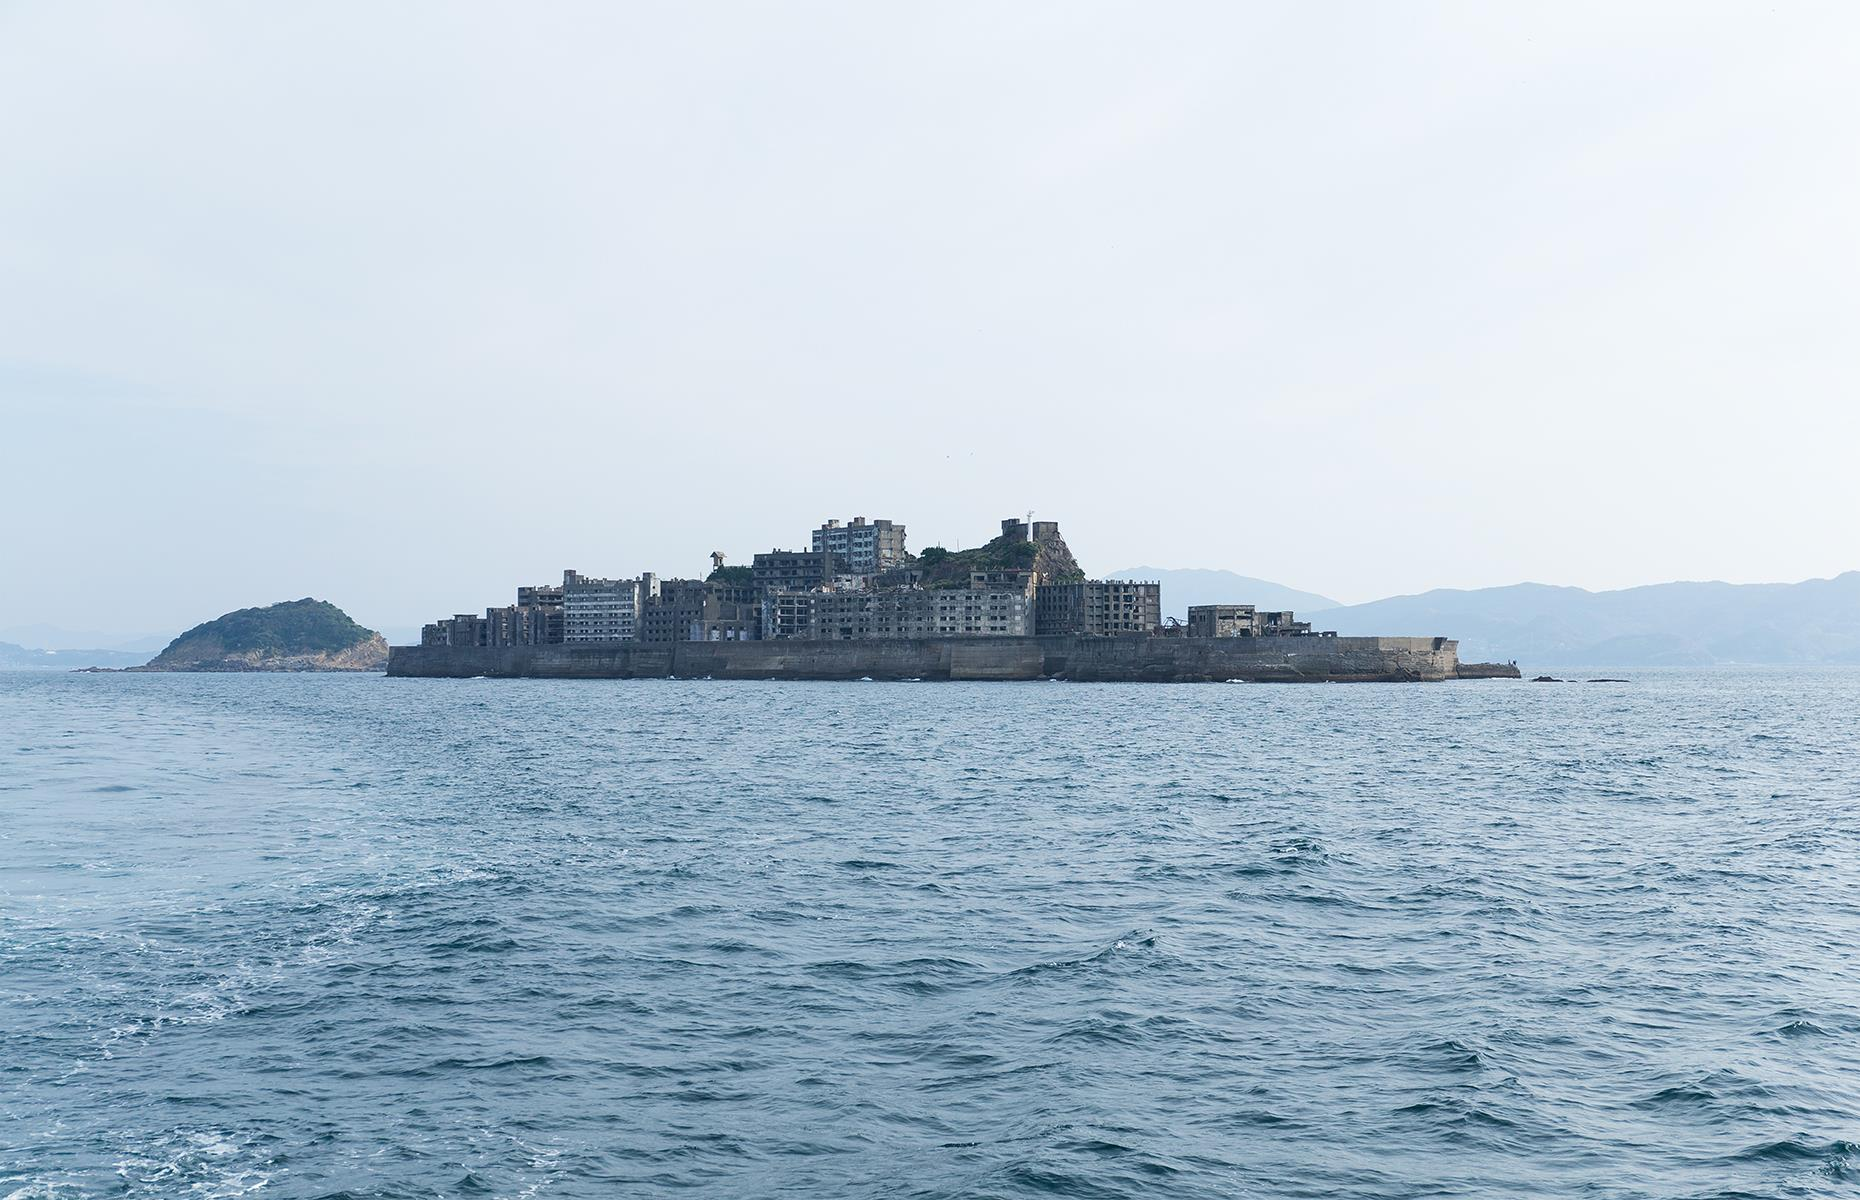 Slide 36 of 68: This tiny island, commonly called Gunkanjima, just off the coast of Nagasaki, was once the site of an undersea coal mine. So rich were the coal resources that by the 1950s some 6,000 miners were squeezed ashore, housed in 10-story high rises. It's also known as Battleship Island because of its shape.